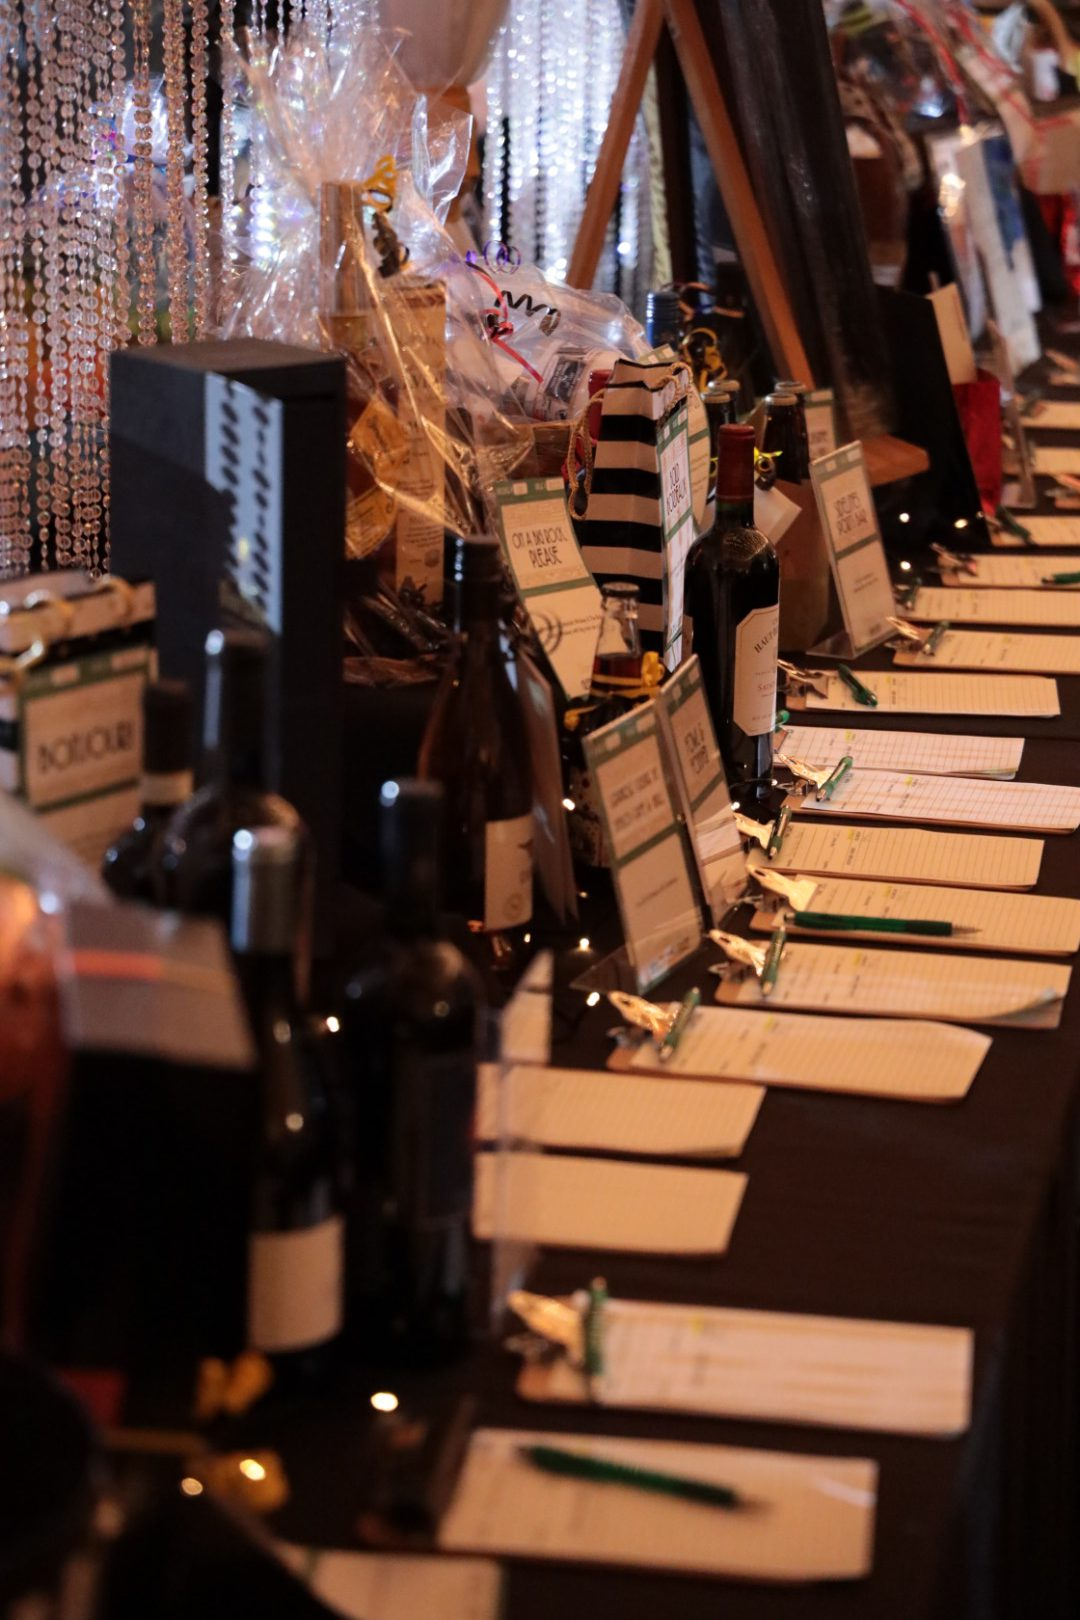 Silent auction items with bidding forms across a table